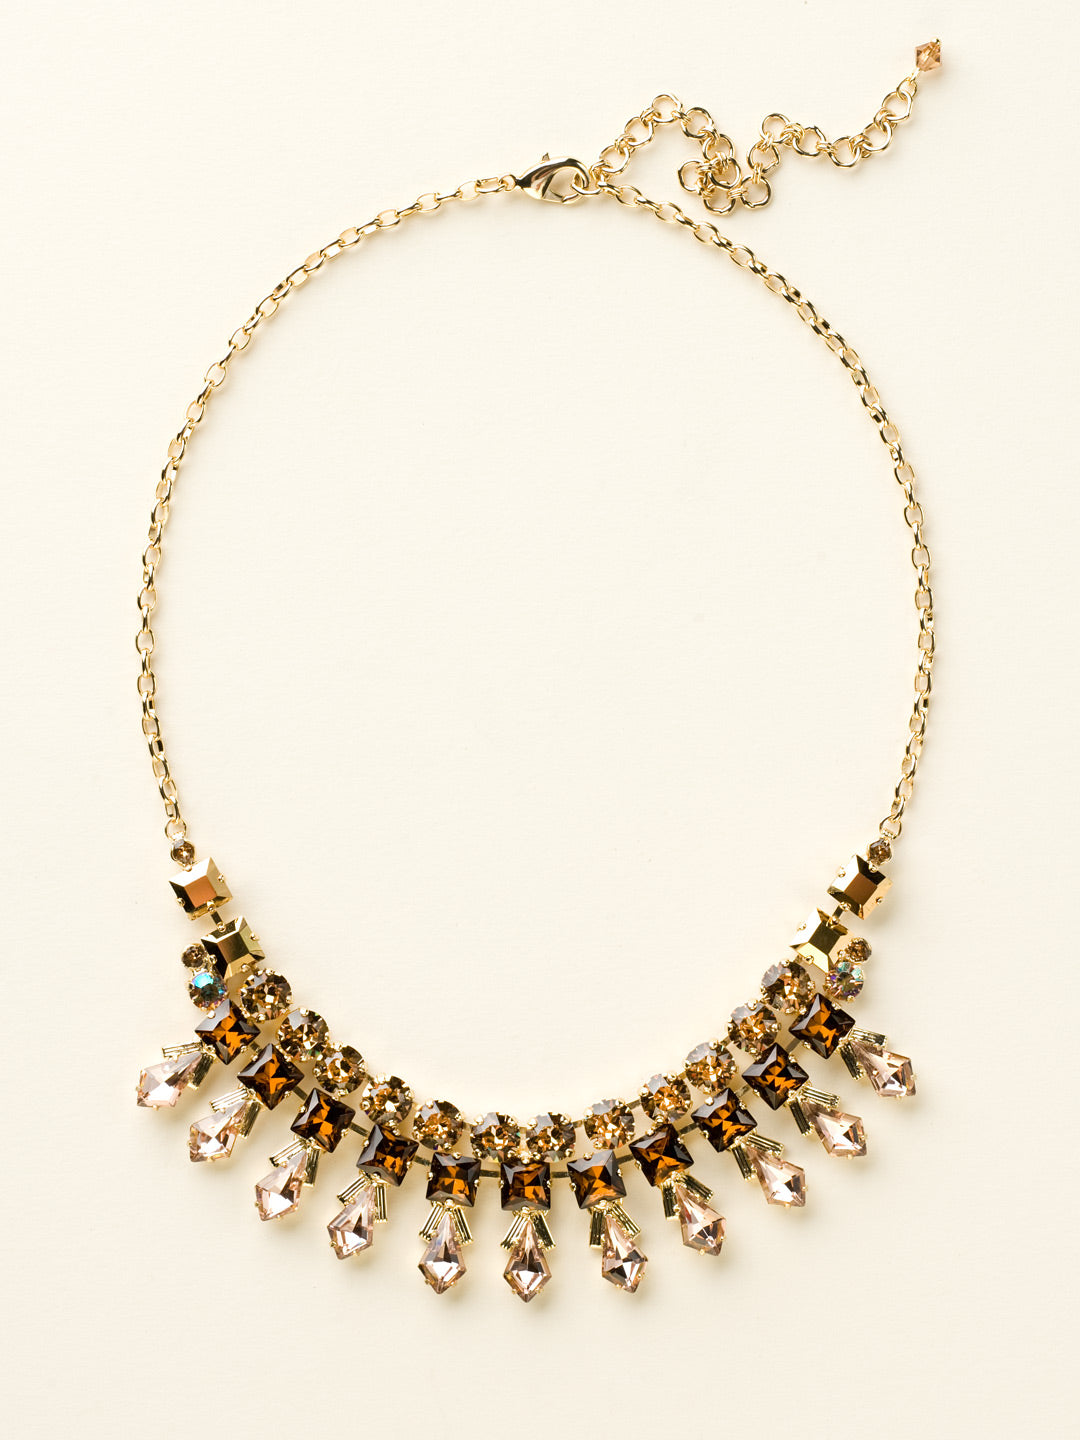 Belle of the Ball Bib Necklace - NCQ1BGGOL